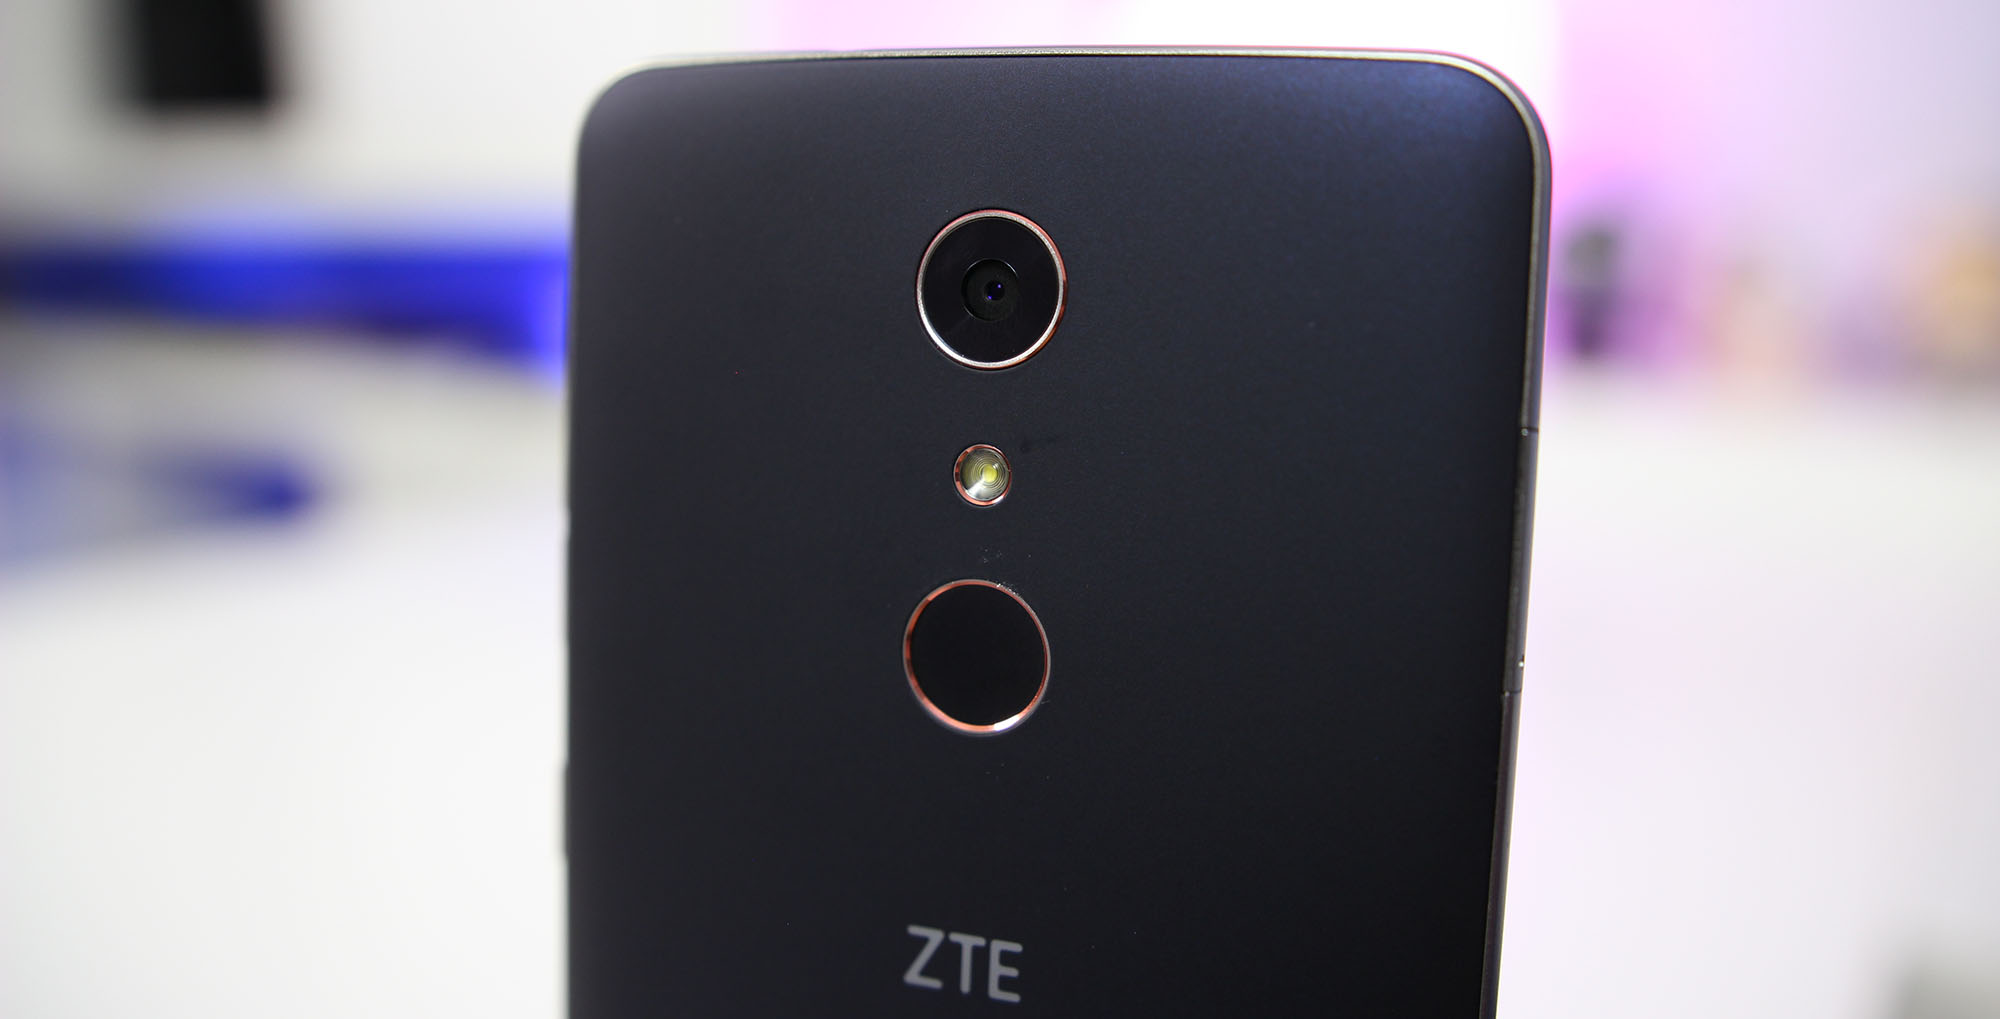 Review: ZTE ZMax Pro is an amazing phone for $99, but with